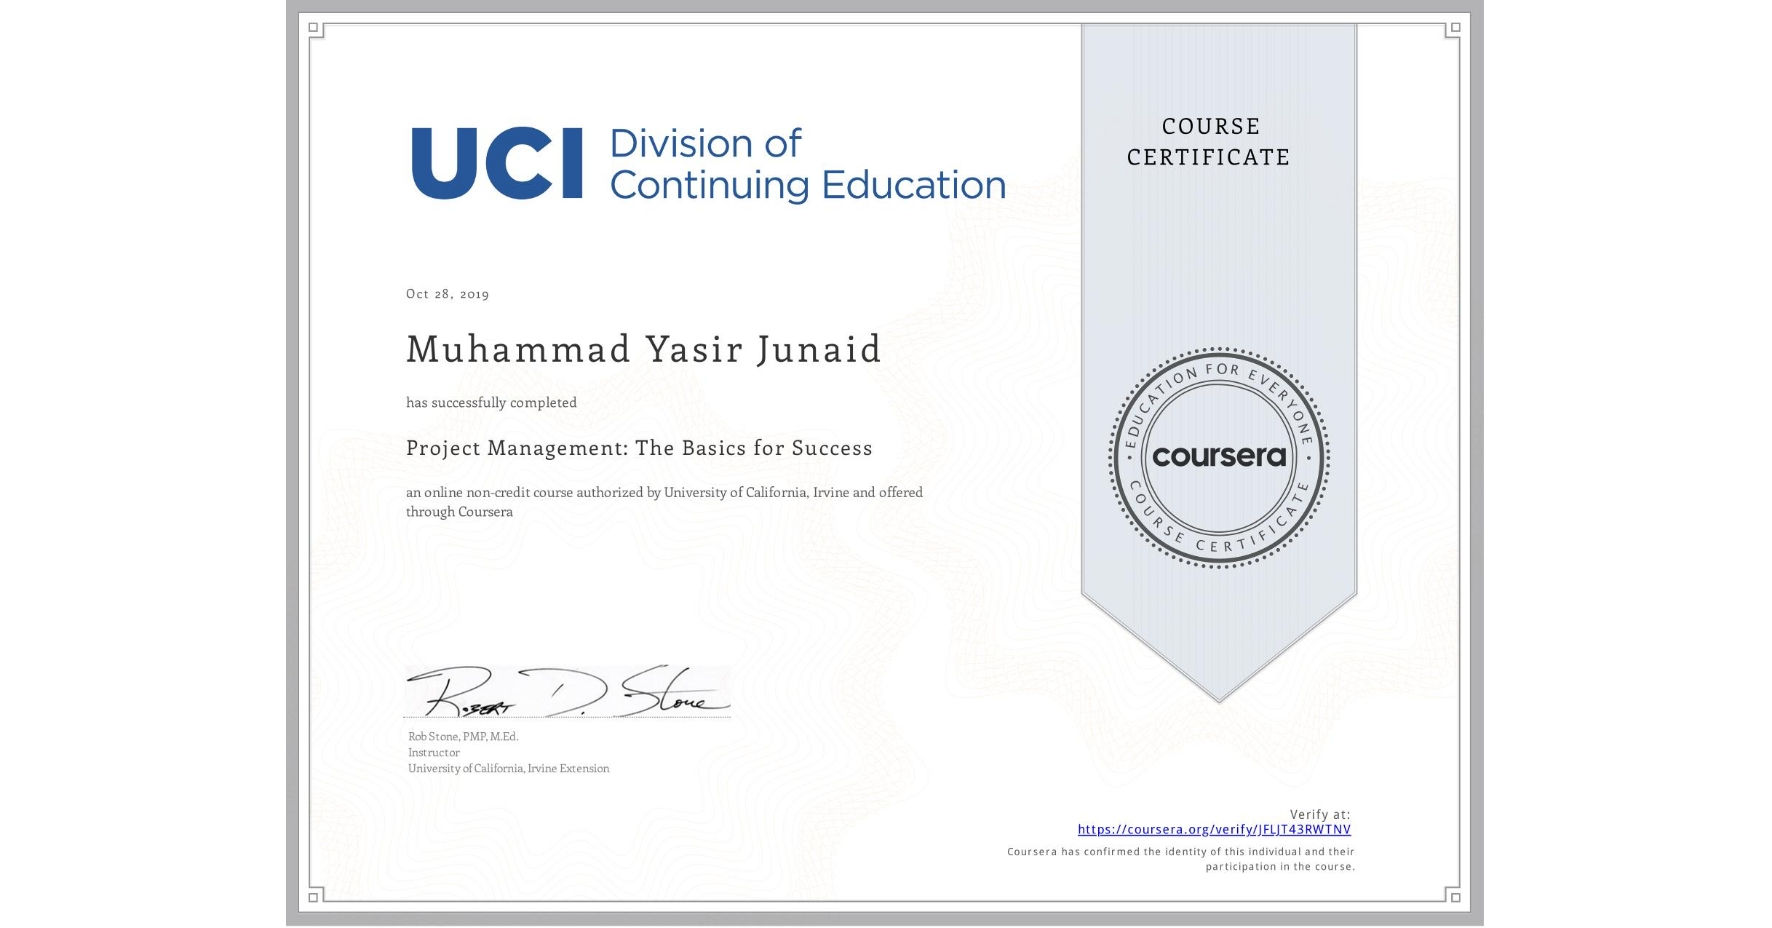 View certificate for Muhammad Yasir Junaid, Project Management: The Basics for Success, an online non-credit course authorized by University of California, Irvine and offered through Coursera